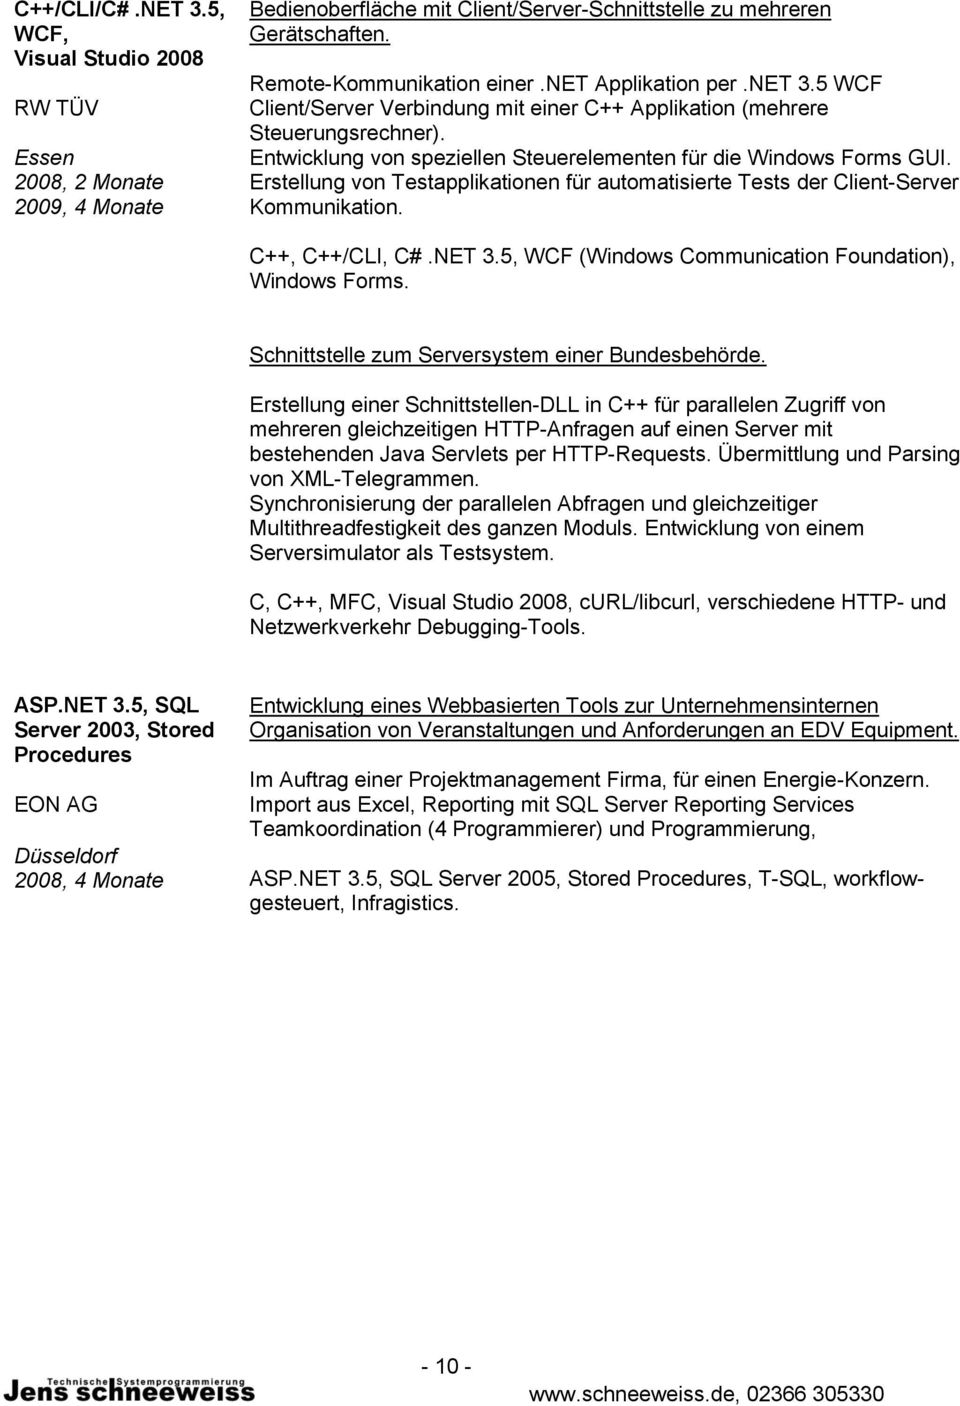 Erstellung von Testapplikationen für automatisierte Tests der Client-Server Kommunikation. C++, C++/CLI, C#.NET 3.5, WCF (Windows Communication Foundation), Windows Forms.